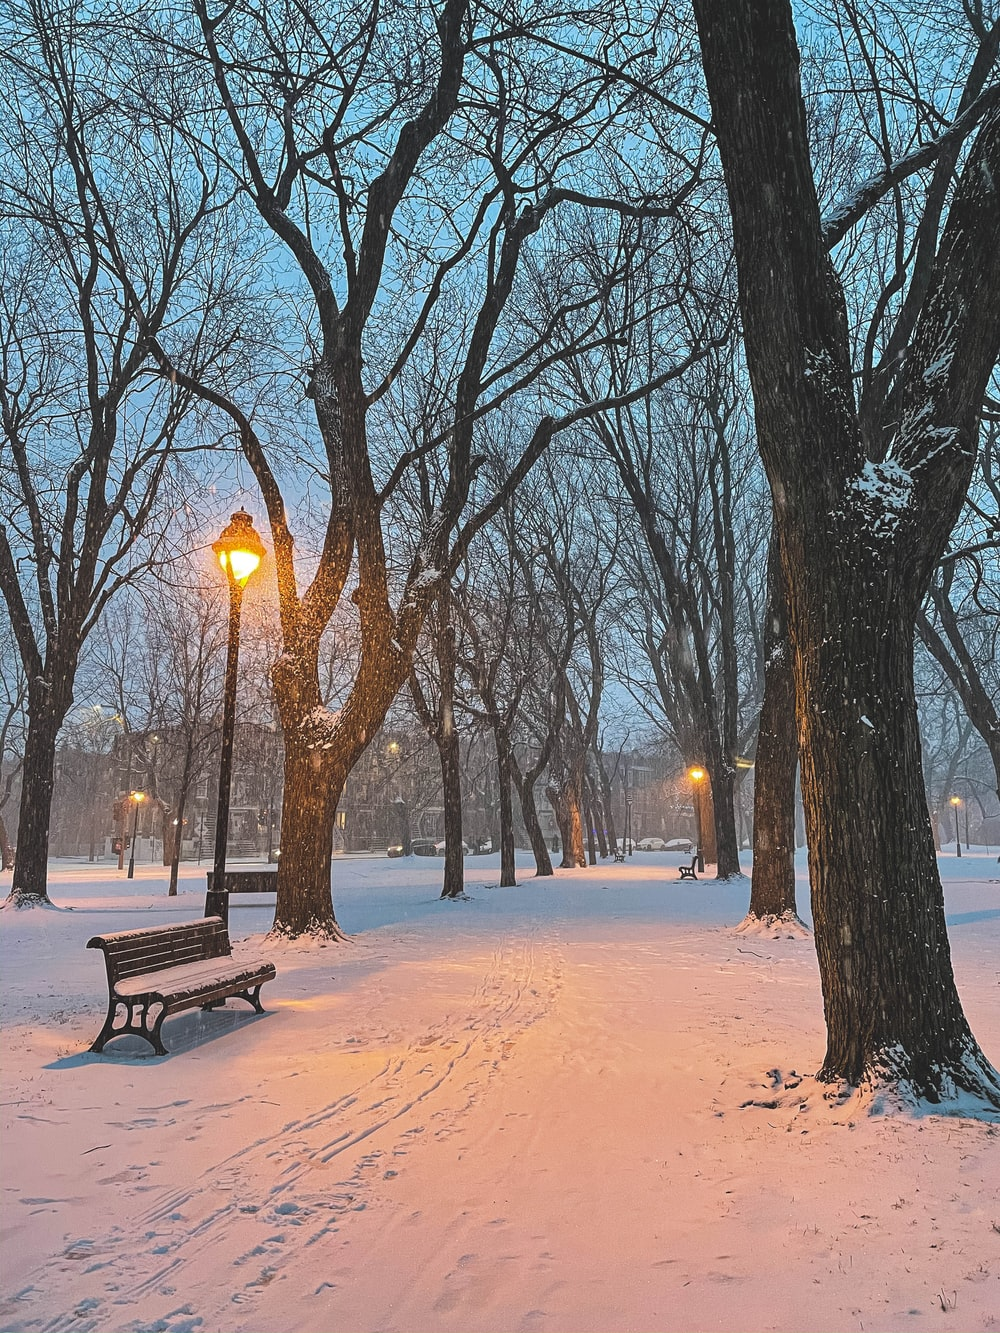 brown wooden bench on snow covered ground during night time